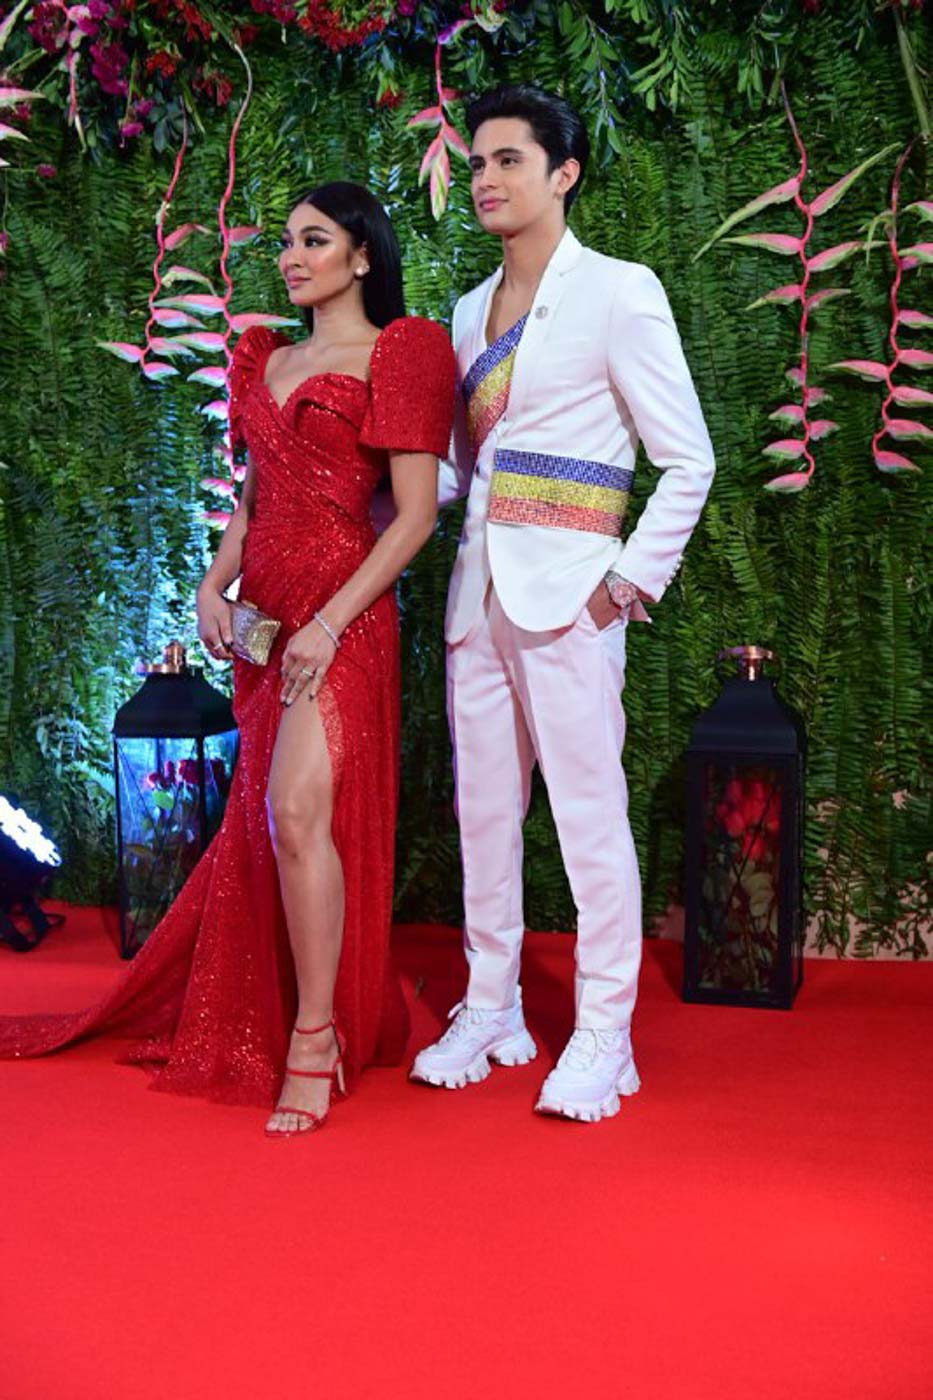 JADINE IN 2019. The love team attend the ABS-CBN Ball in 2019. File photo by Alecs Ongcal/Rappler